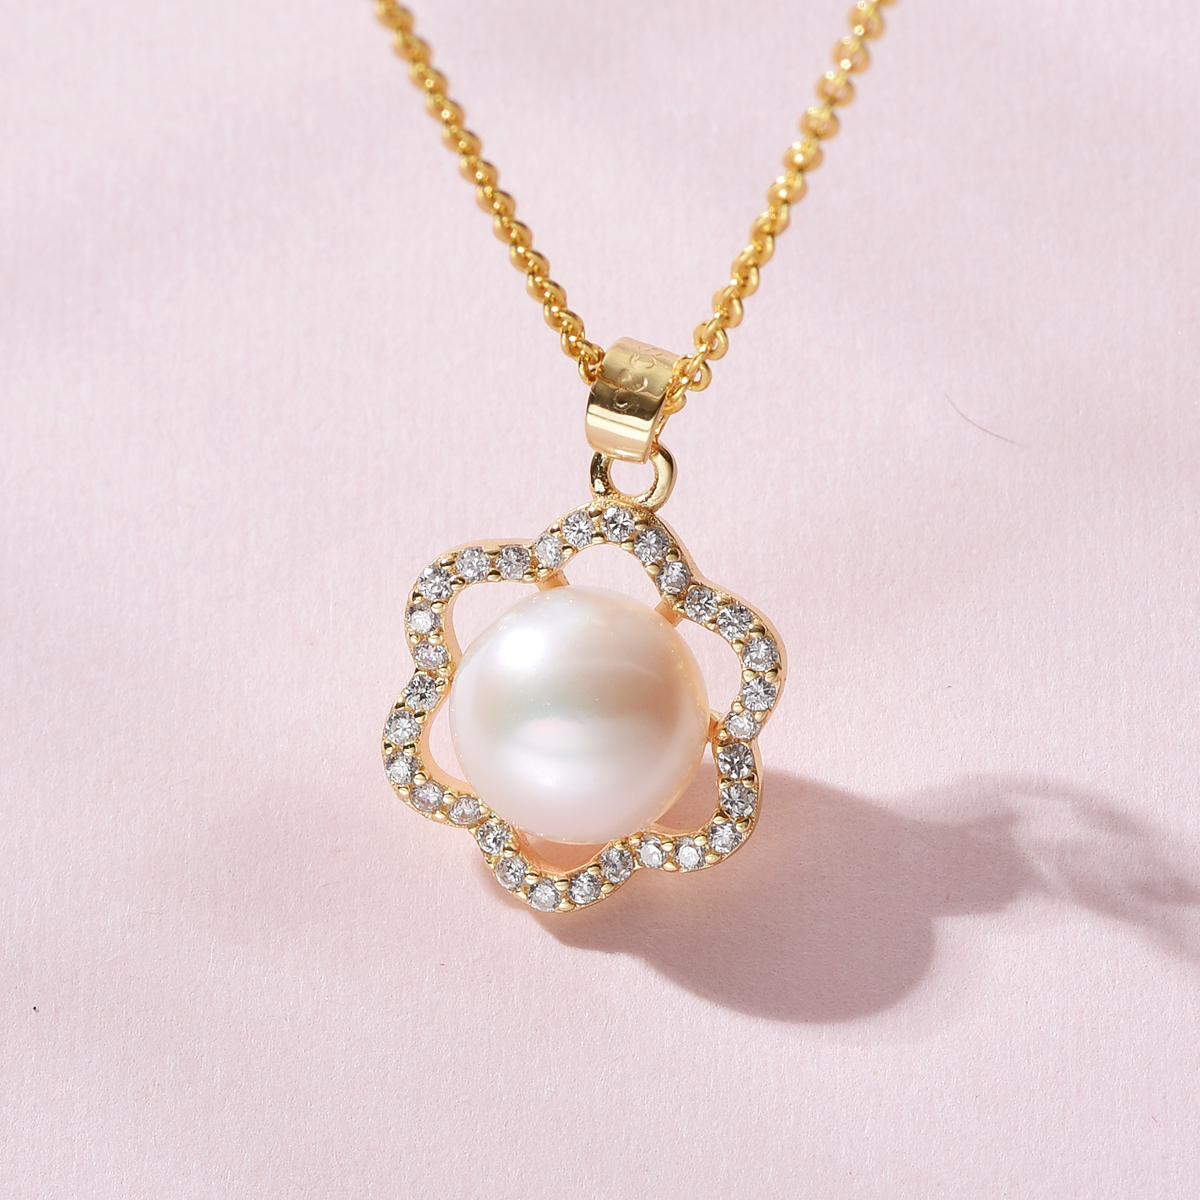 gN Pearl White Natural Freshwater 8-9mm Pearl Pendants Necklaces 925 Silver Gold Plated Flower Zirconia Choker Chain gNPearl